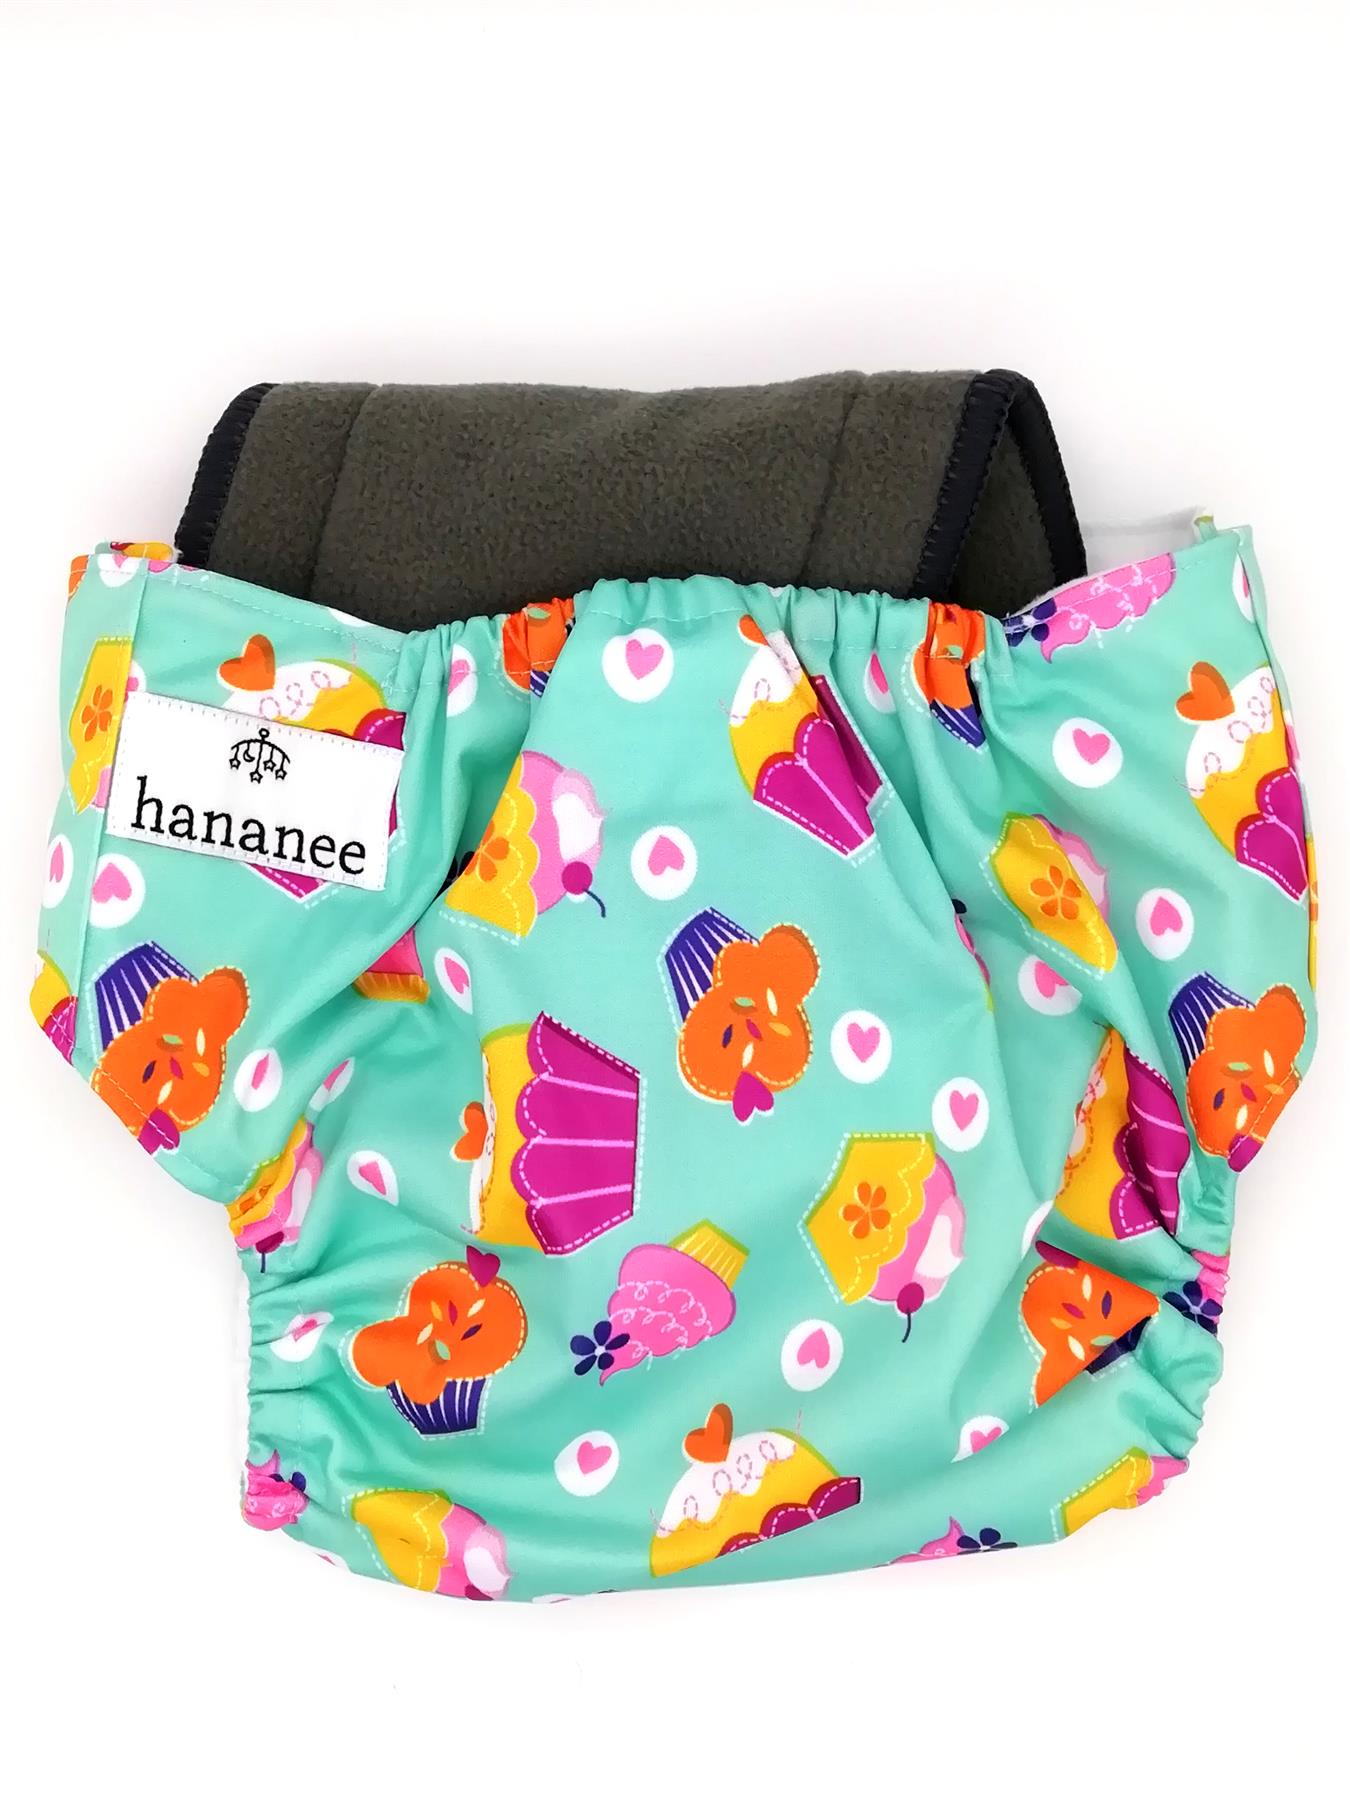 Hananee Baby Cloth Diapers with Bamboo Charcoal Insert All-In-One Nappy Zebra